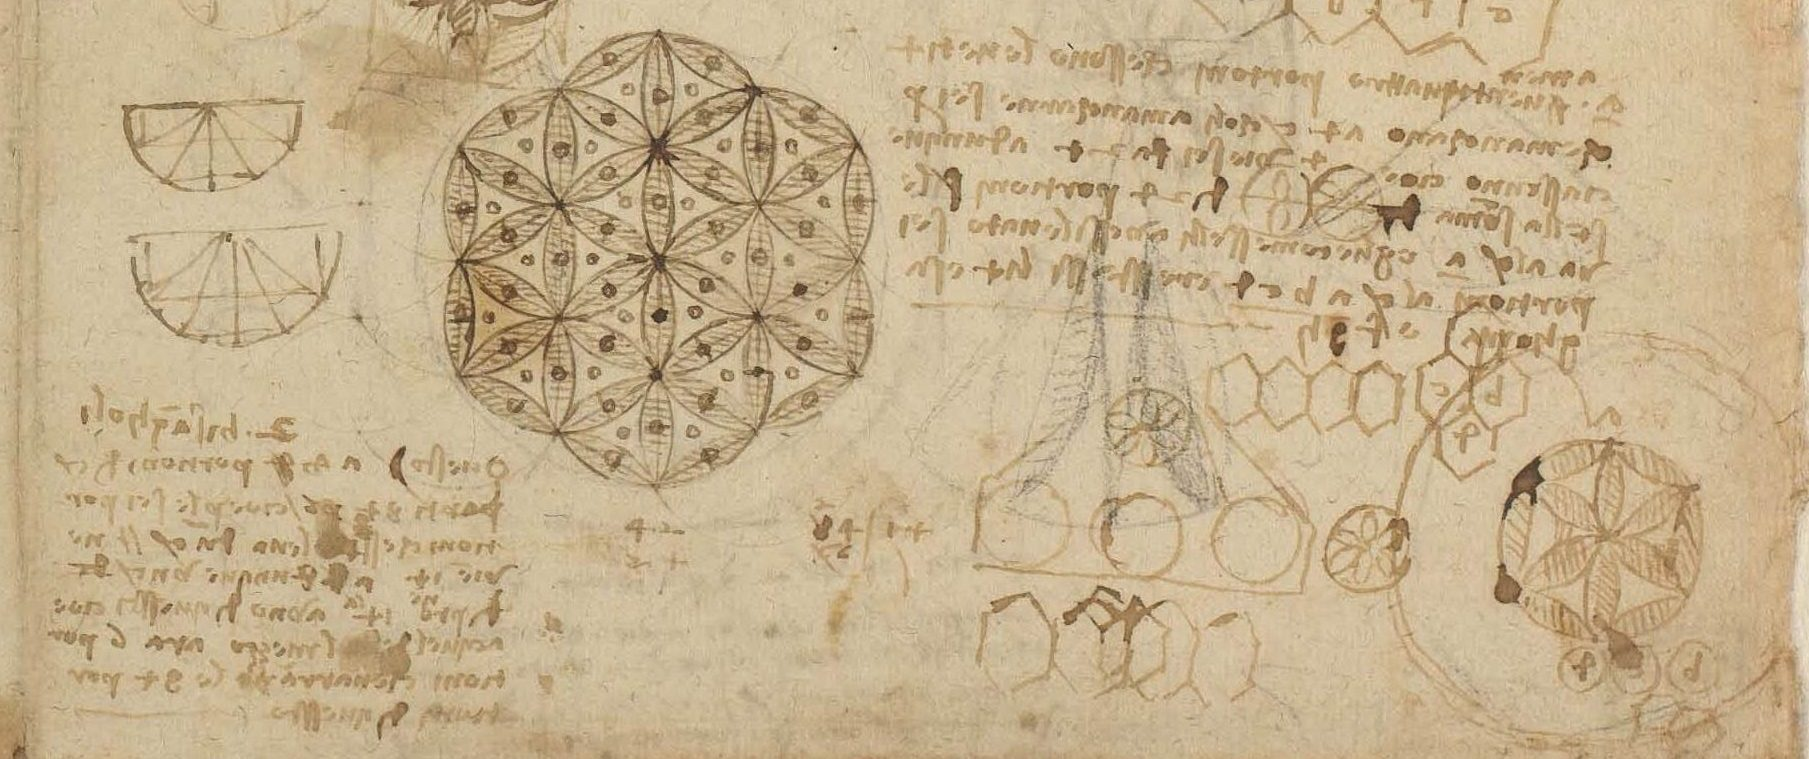 <p>CA f. 482 r: Studies of lunulae and a note in French, 1517-18; detail</p>